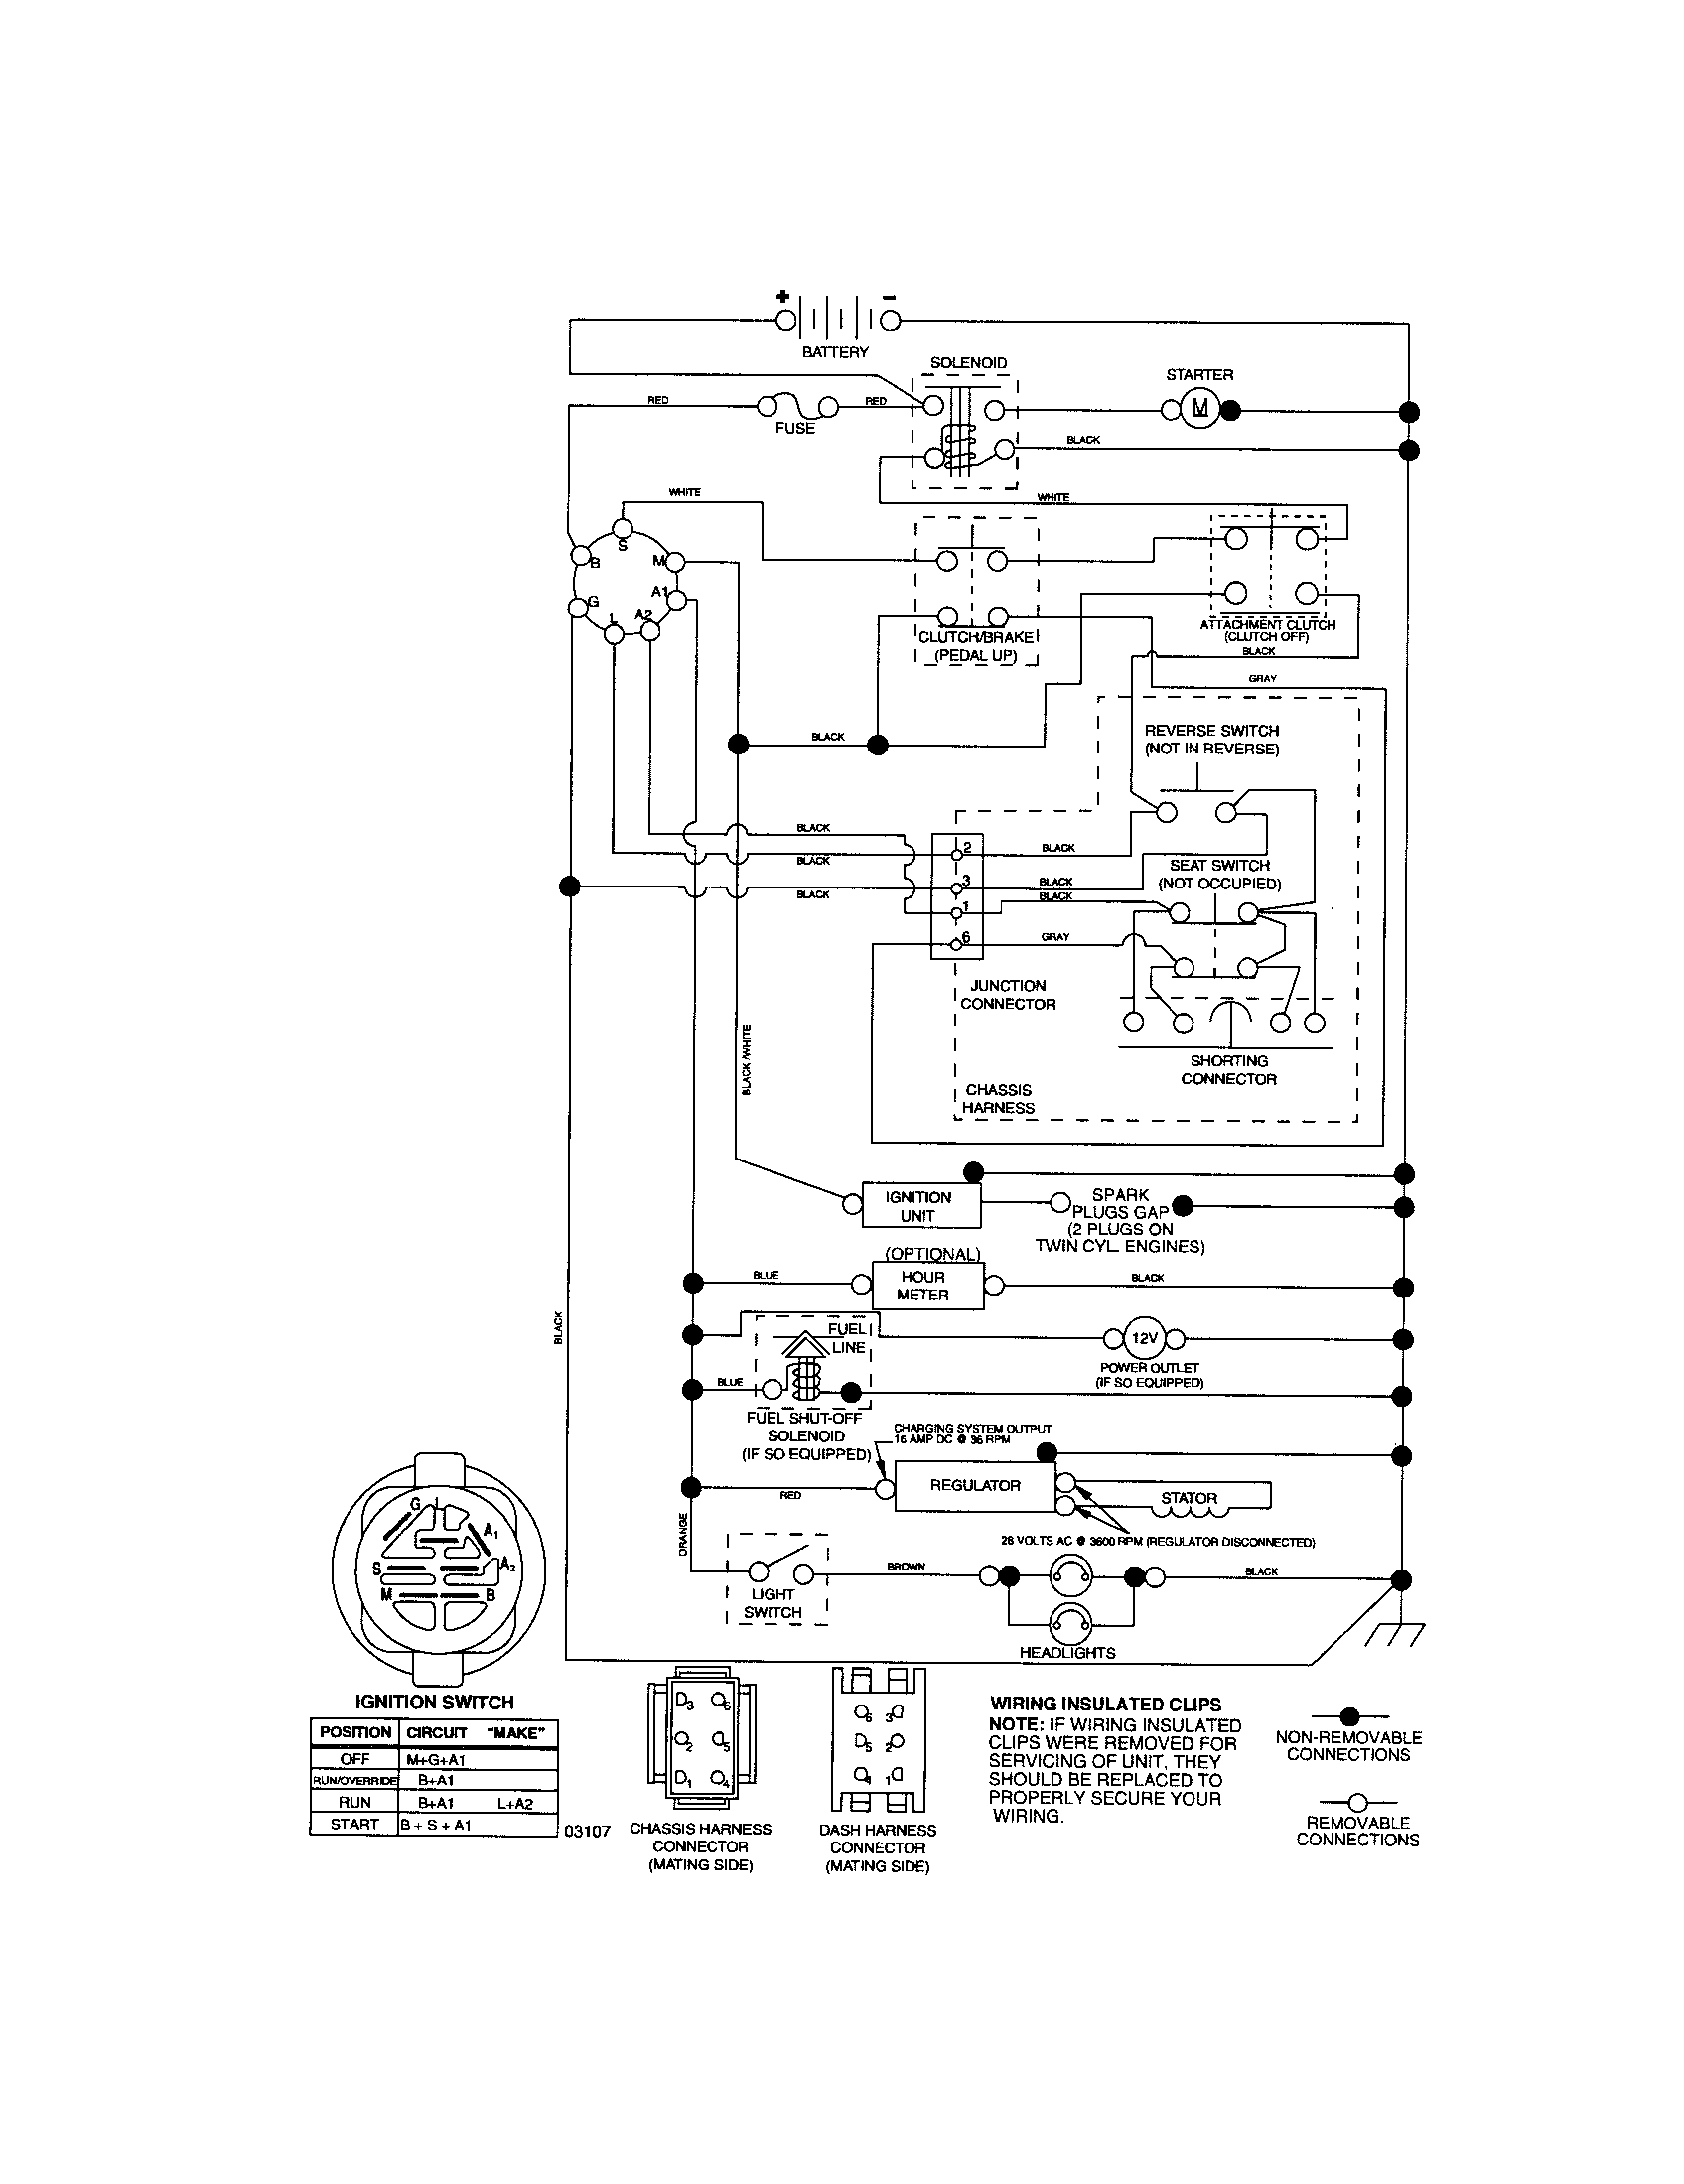 Diagram Ford 6000 Starter Wiring Diagram Full Version Hd Quality Wiring Diagram Diagramnaomiv Mairiecellule Fr